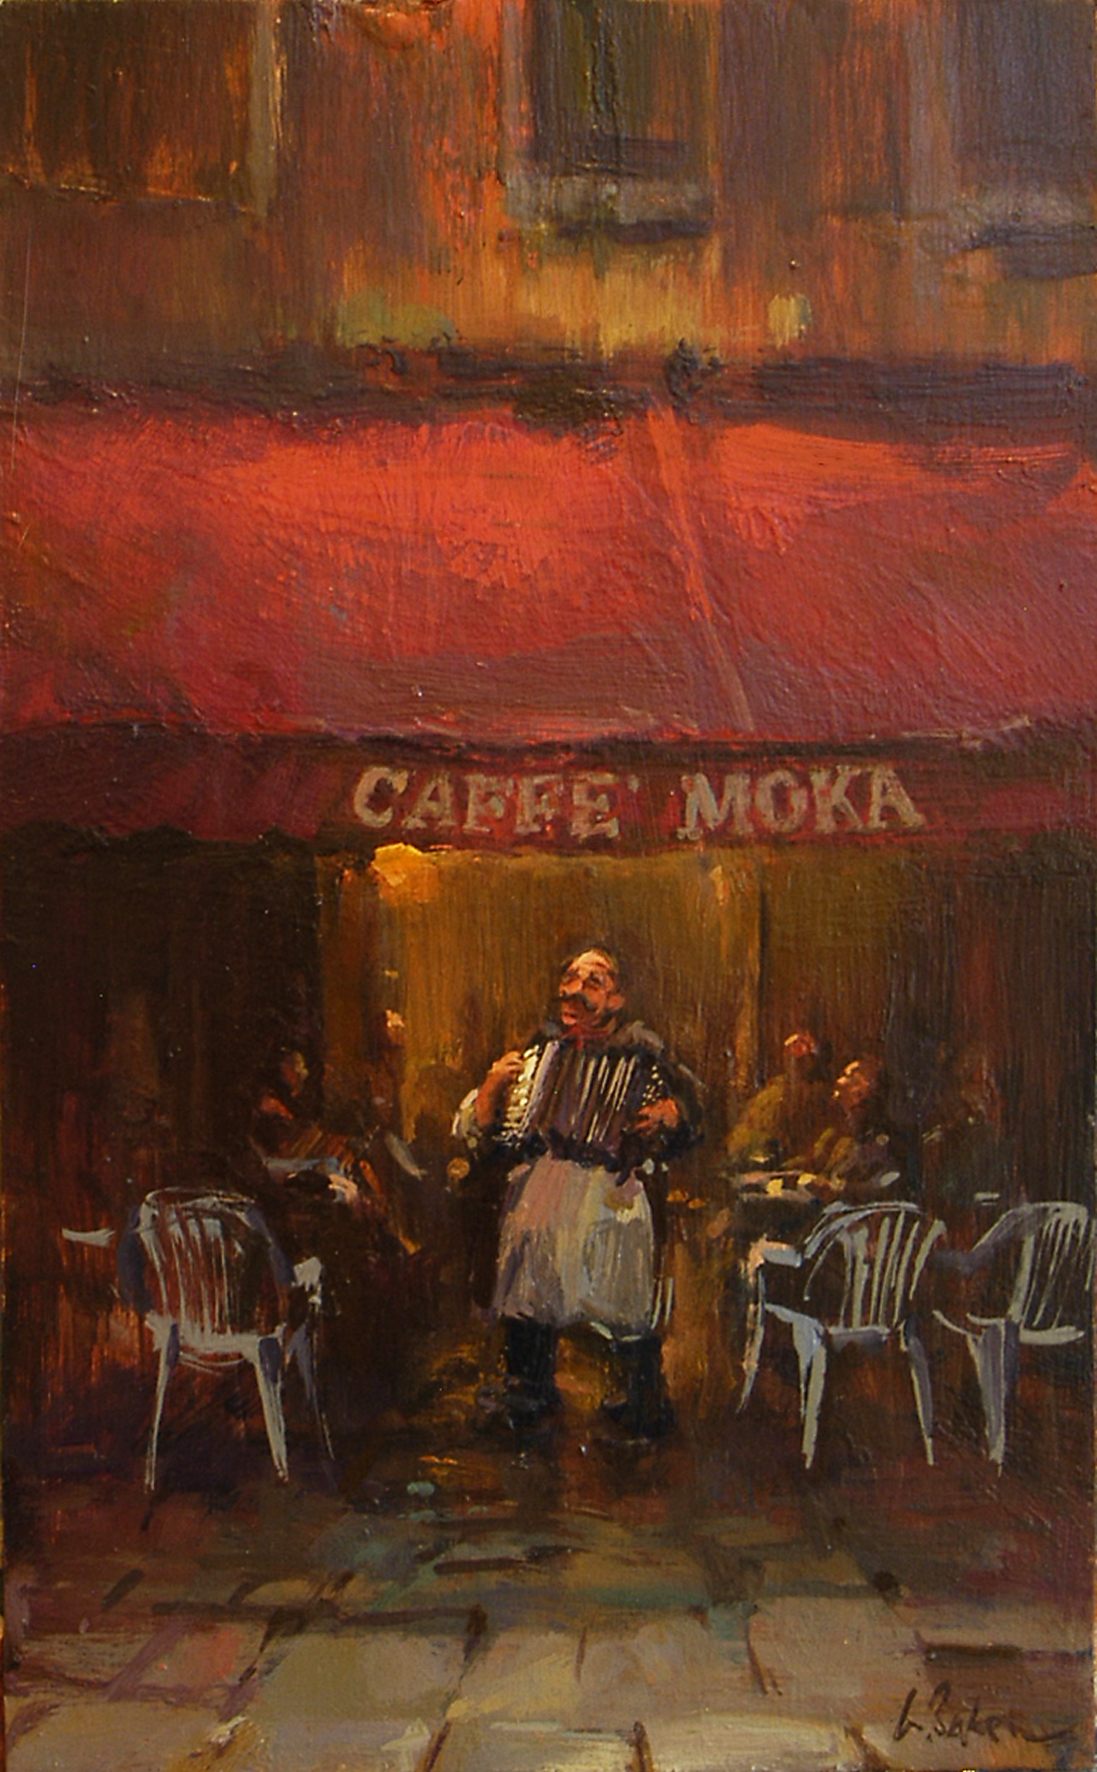 Caffe Moka - oil on board - 40 x 25 cm - SOLD